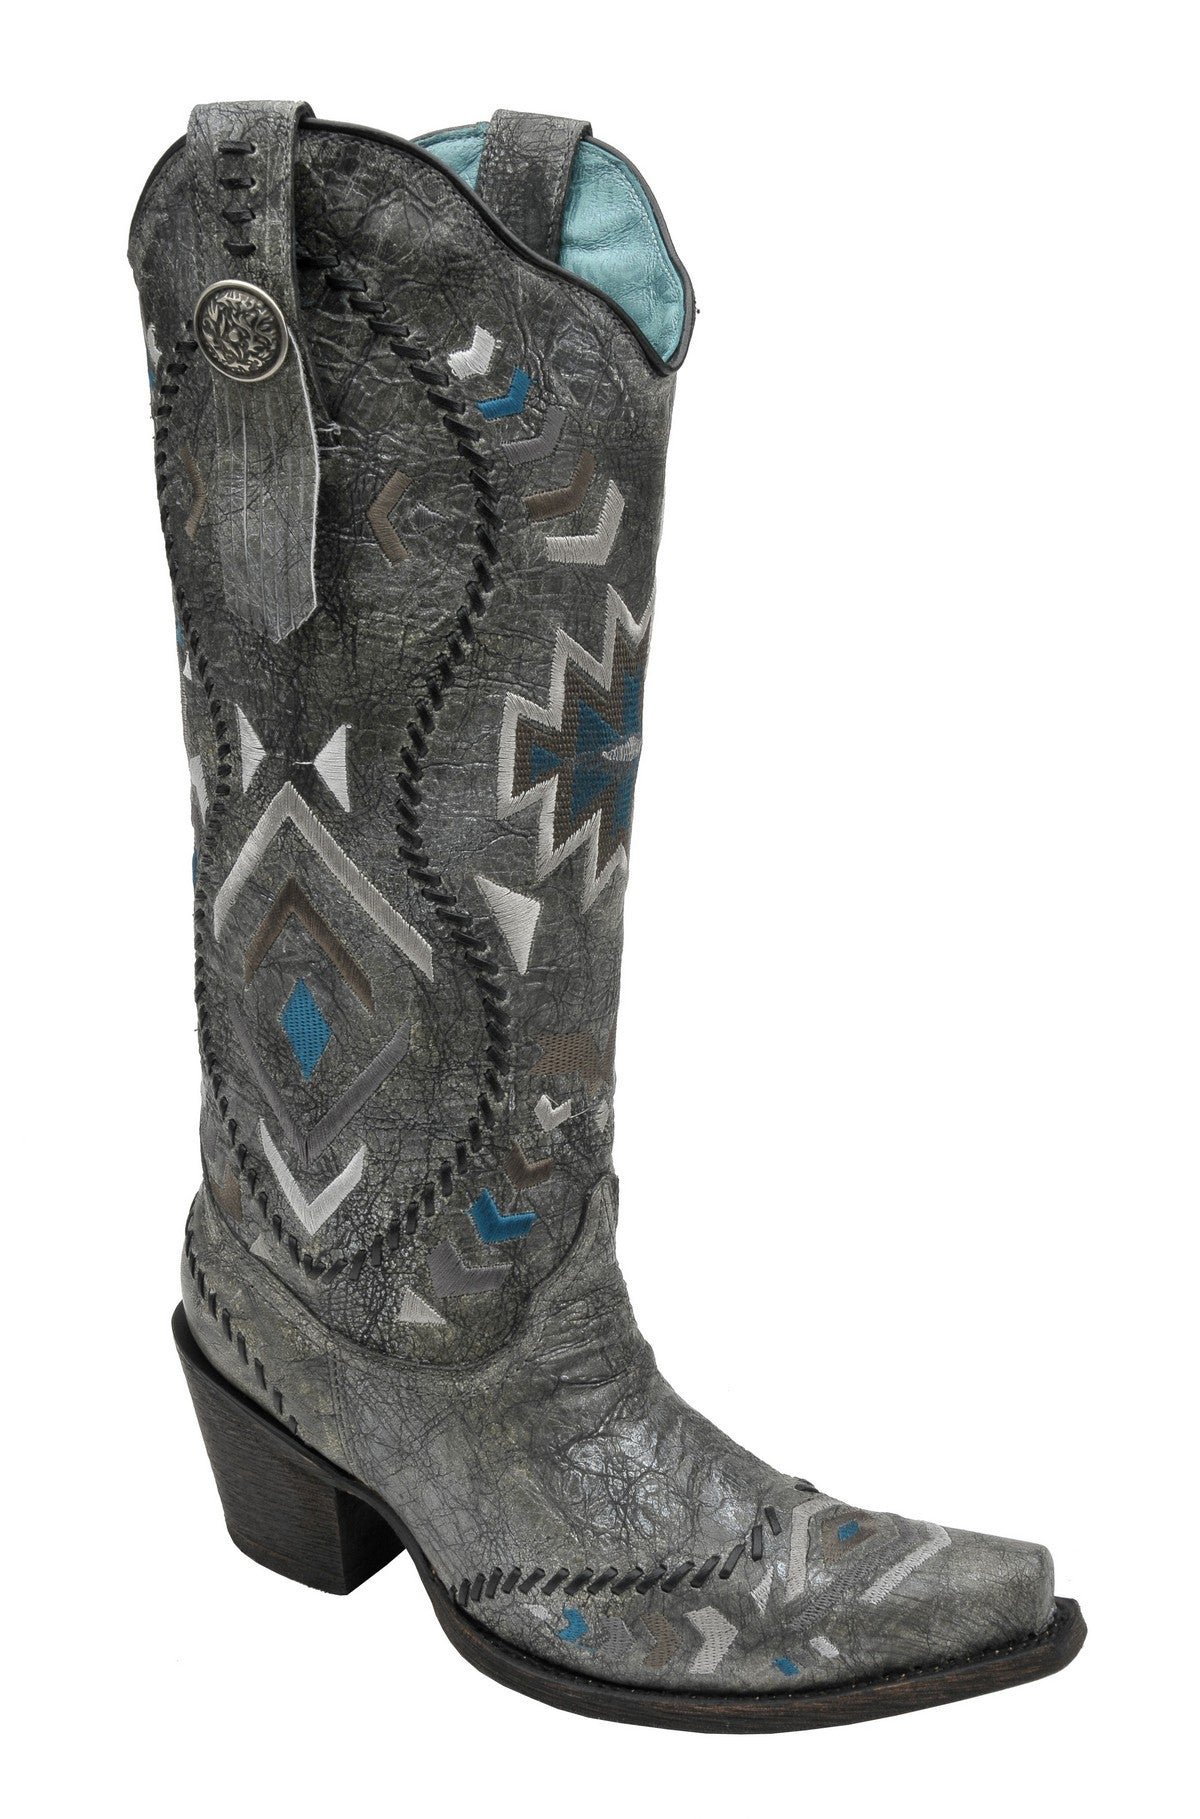 Women's Corral Western Boot #C2883-C